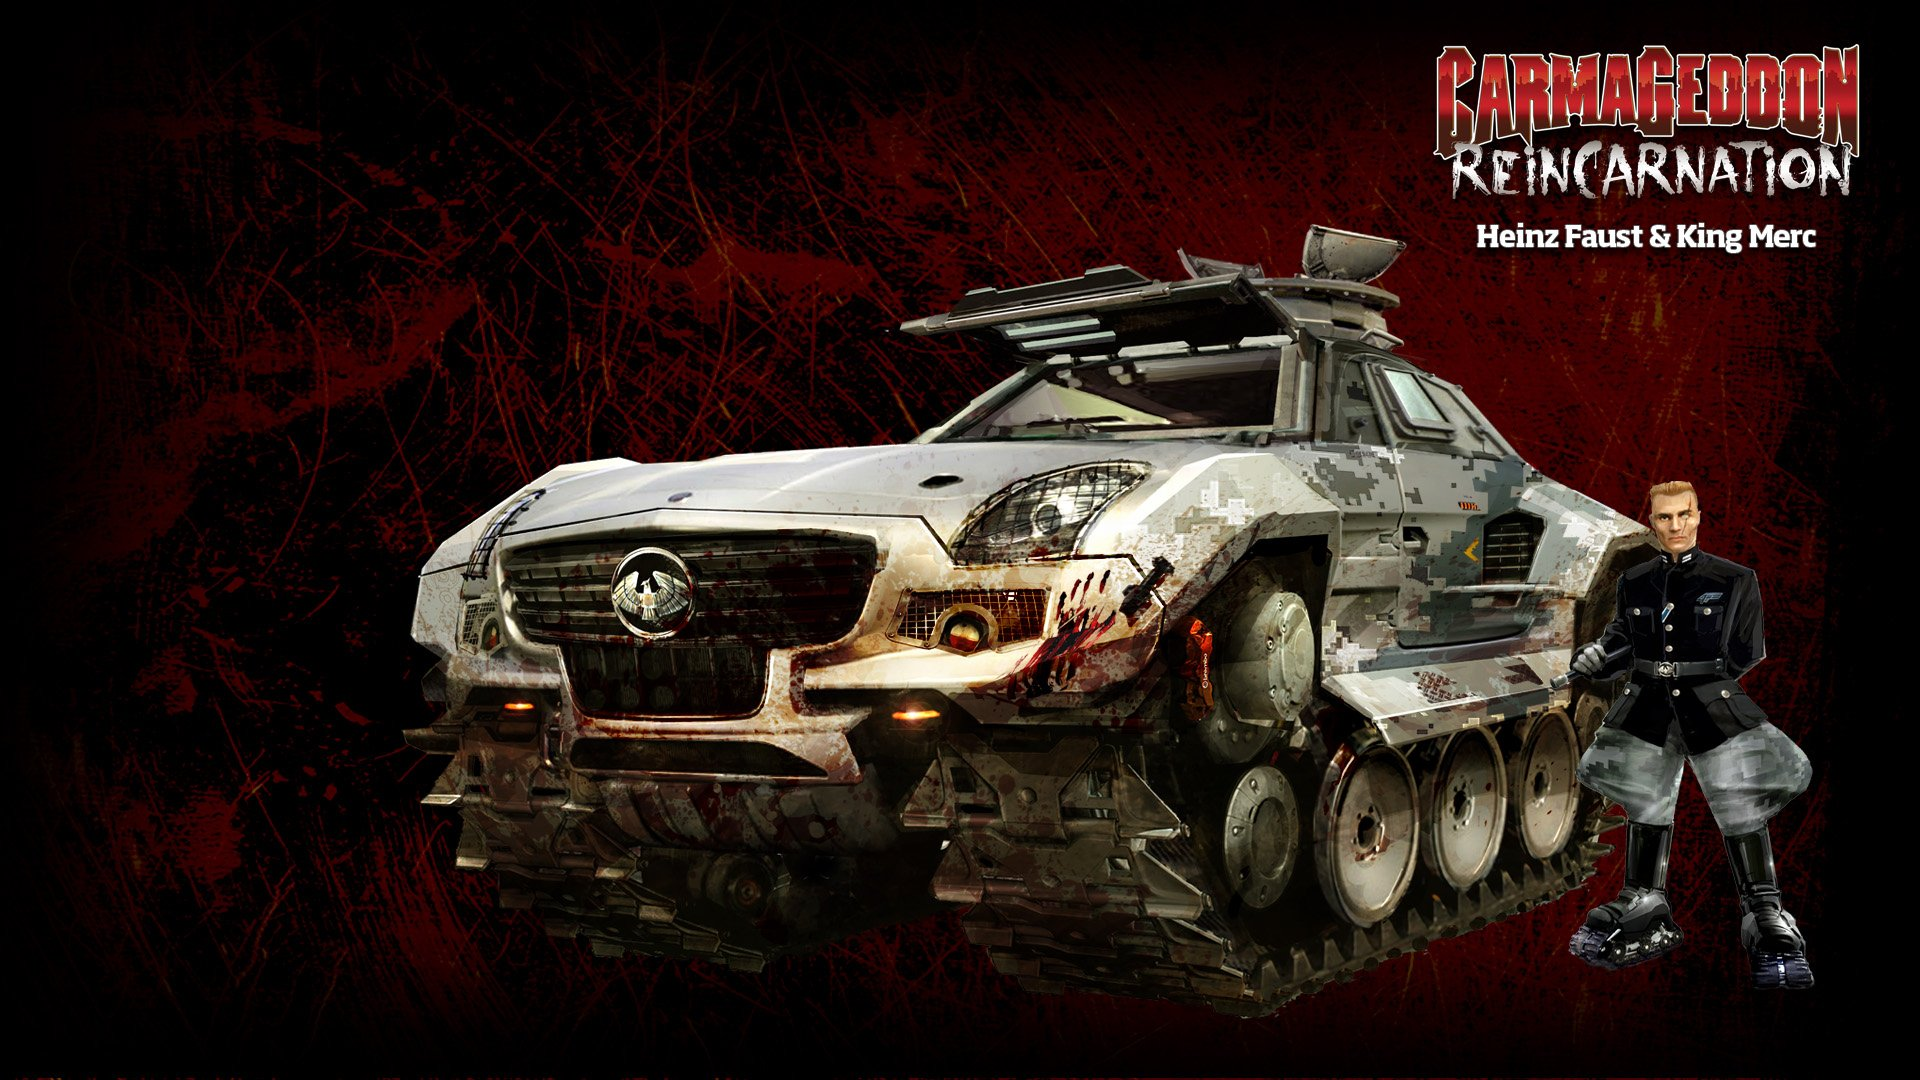 Carmageddon Reincarnation game ge wallpaper 1920x1080 167834 1920x1080